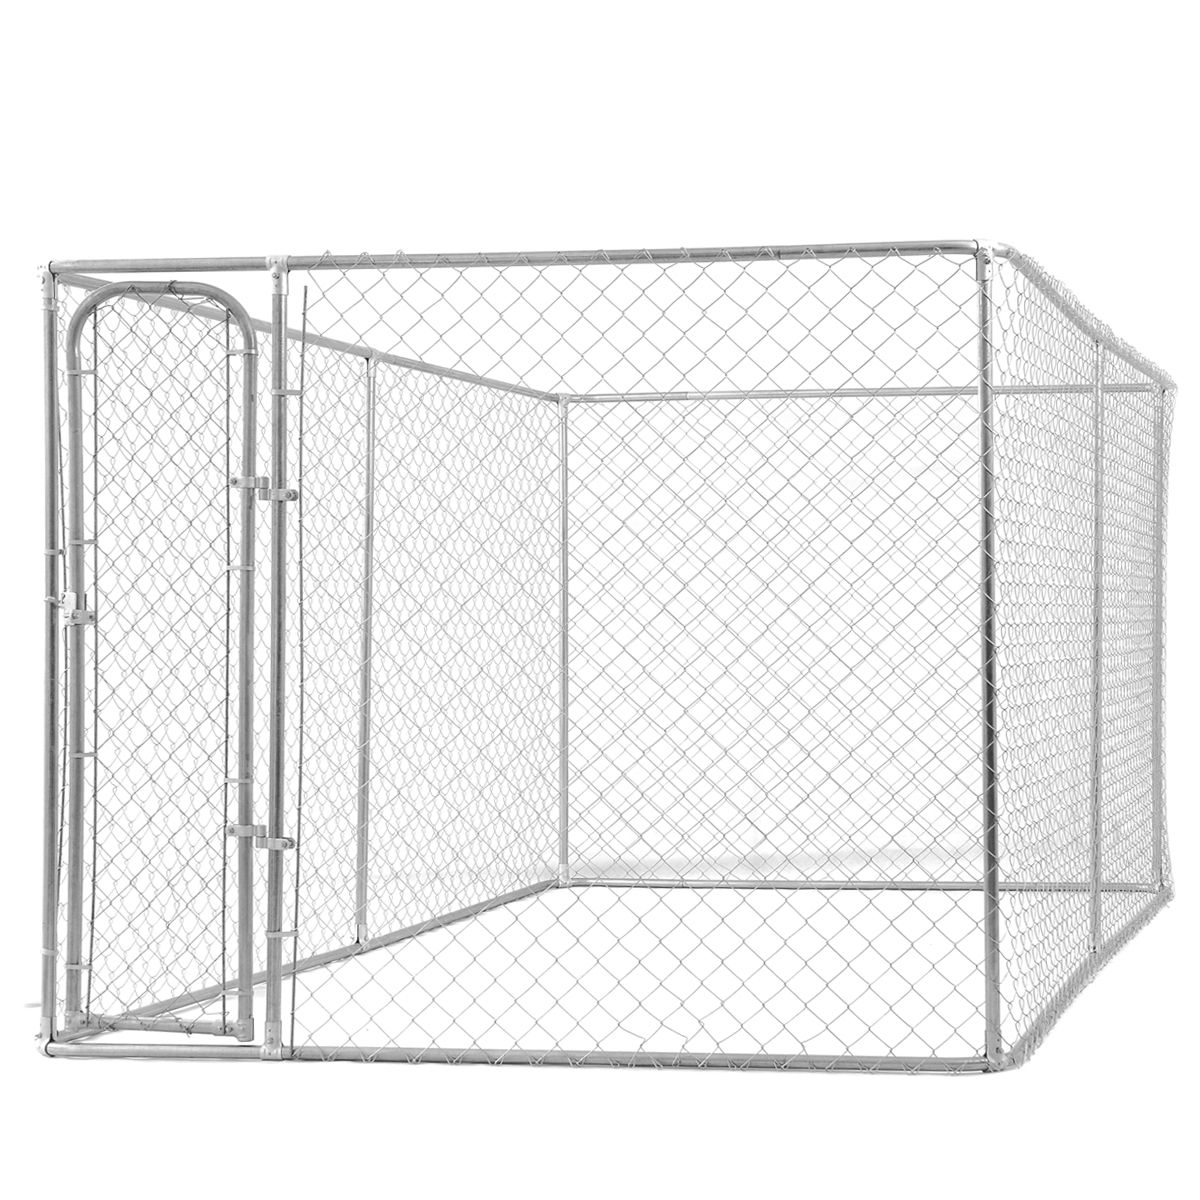 Chain Link Dog Kennel Large Dog Fence